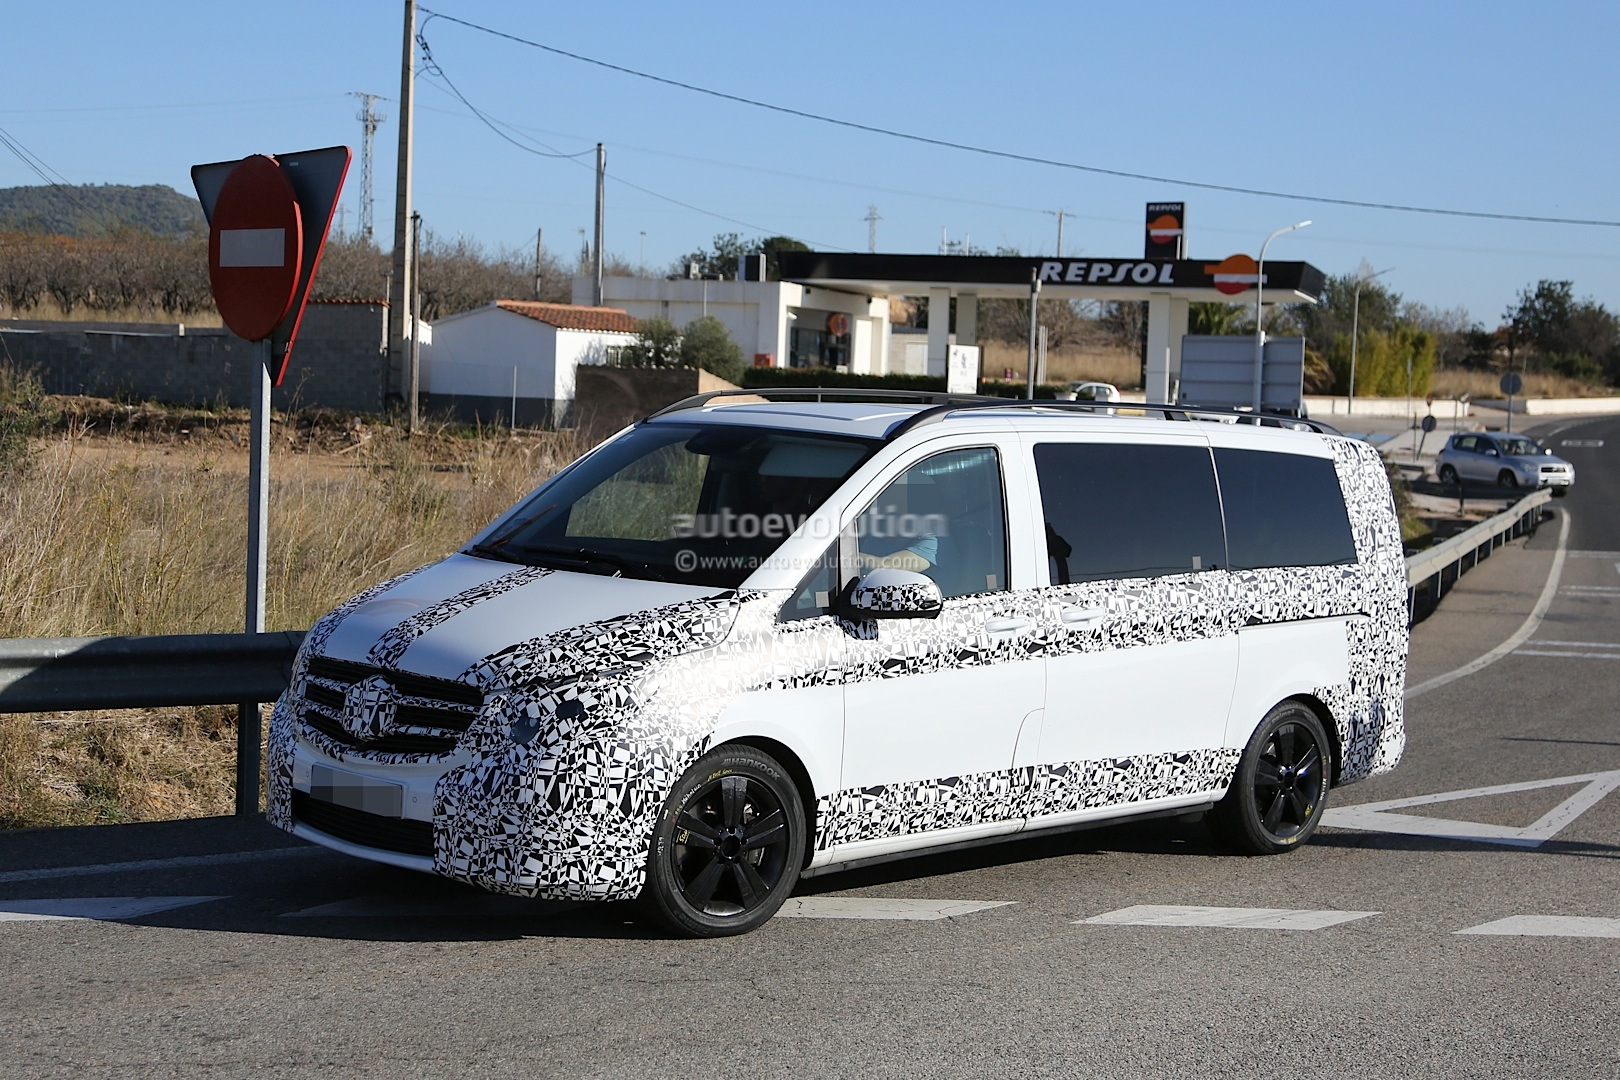 2014 - [Mercedes] Classe V/Vito - Page 4 Herd-of-2015-mercedes-benz-v-class-prototypes-caught-in-the-open-photo-gallery-1080p-3